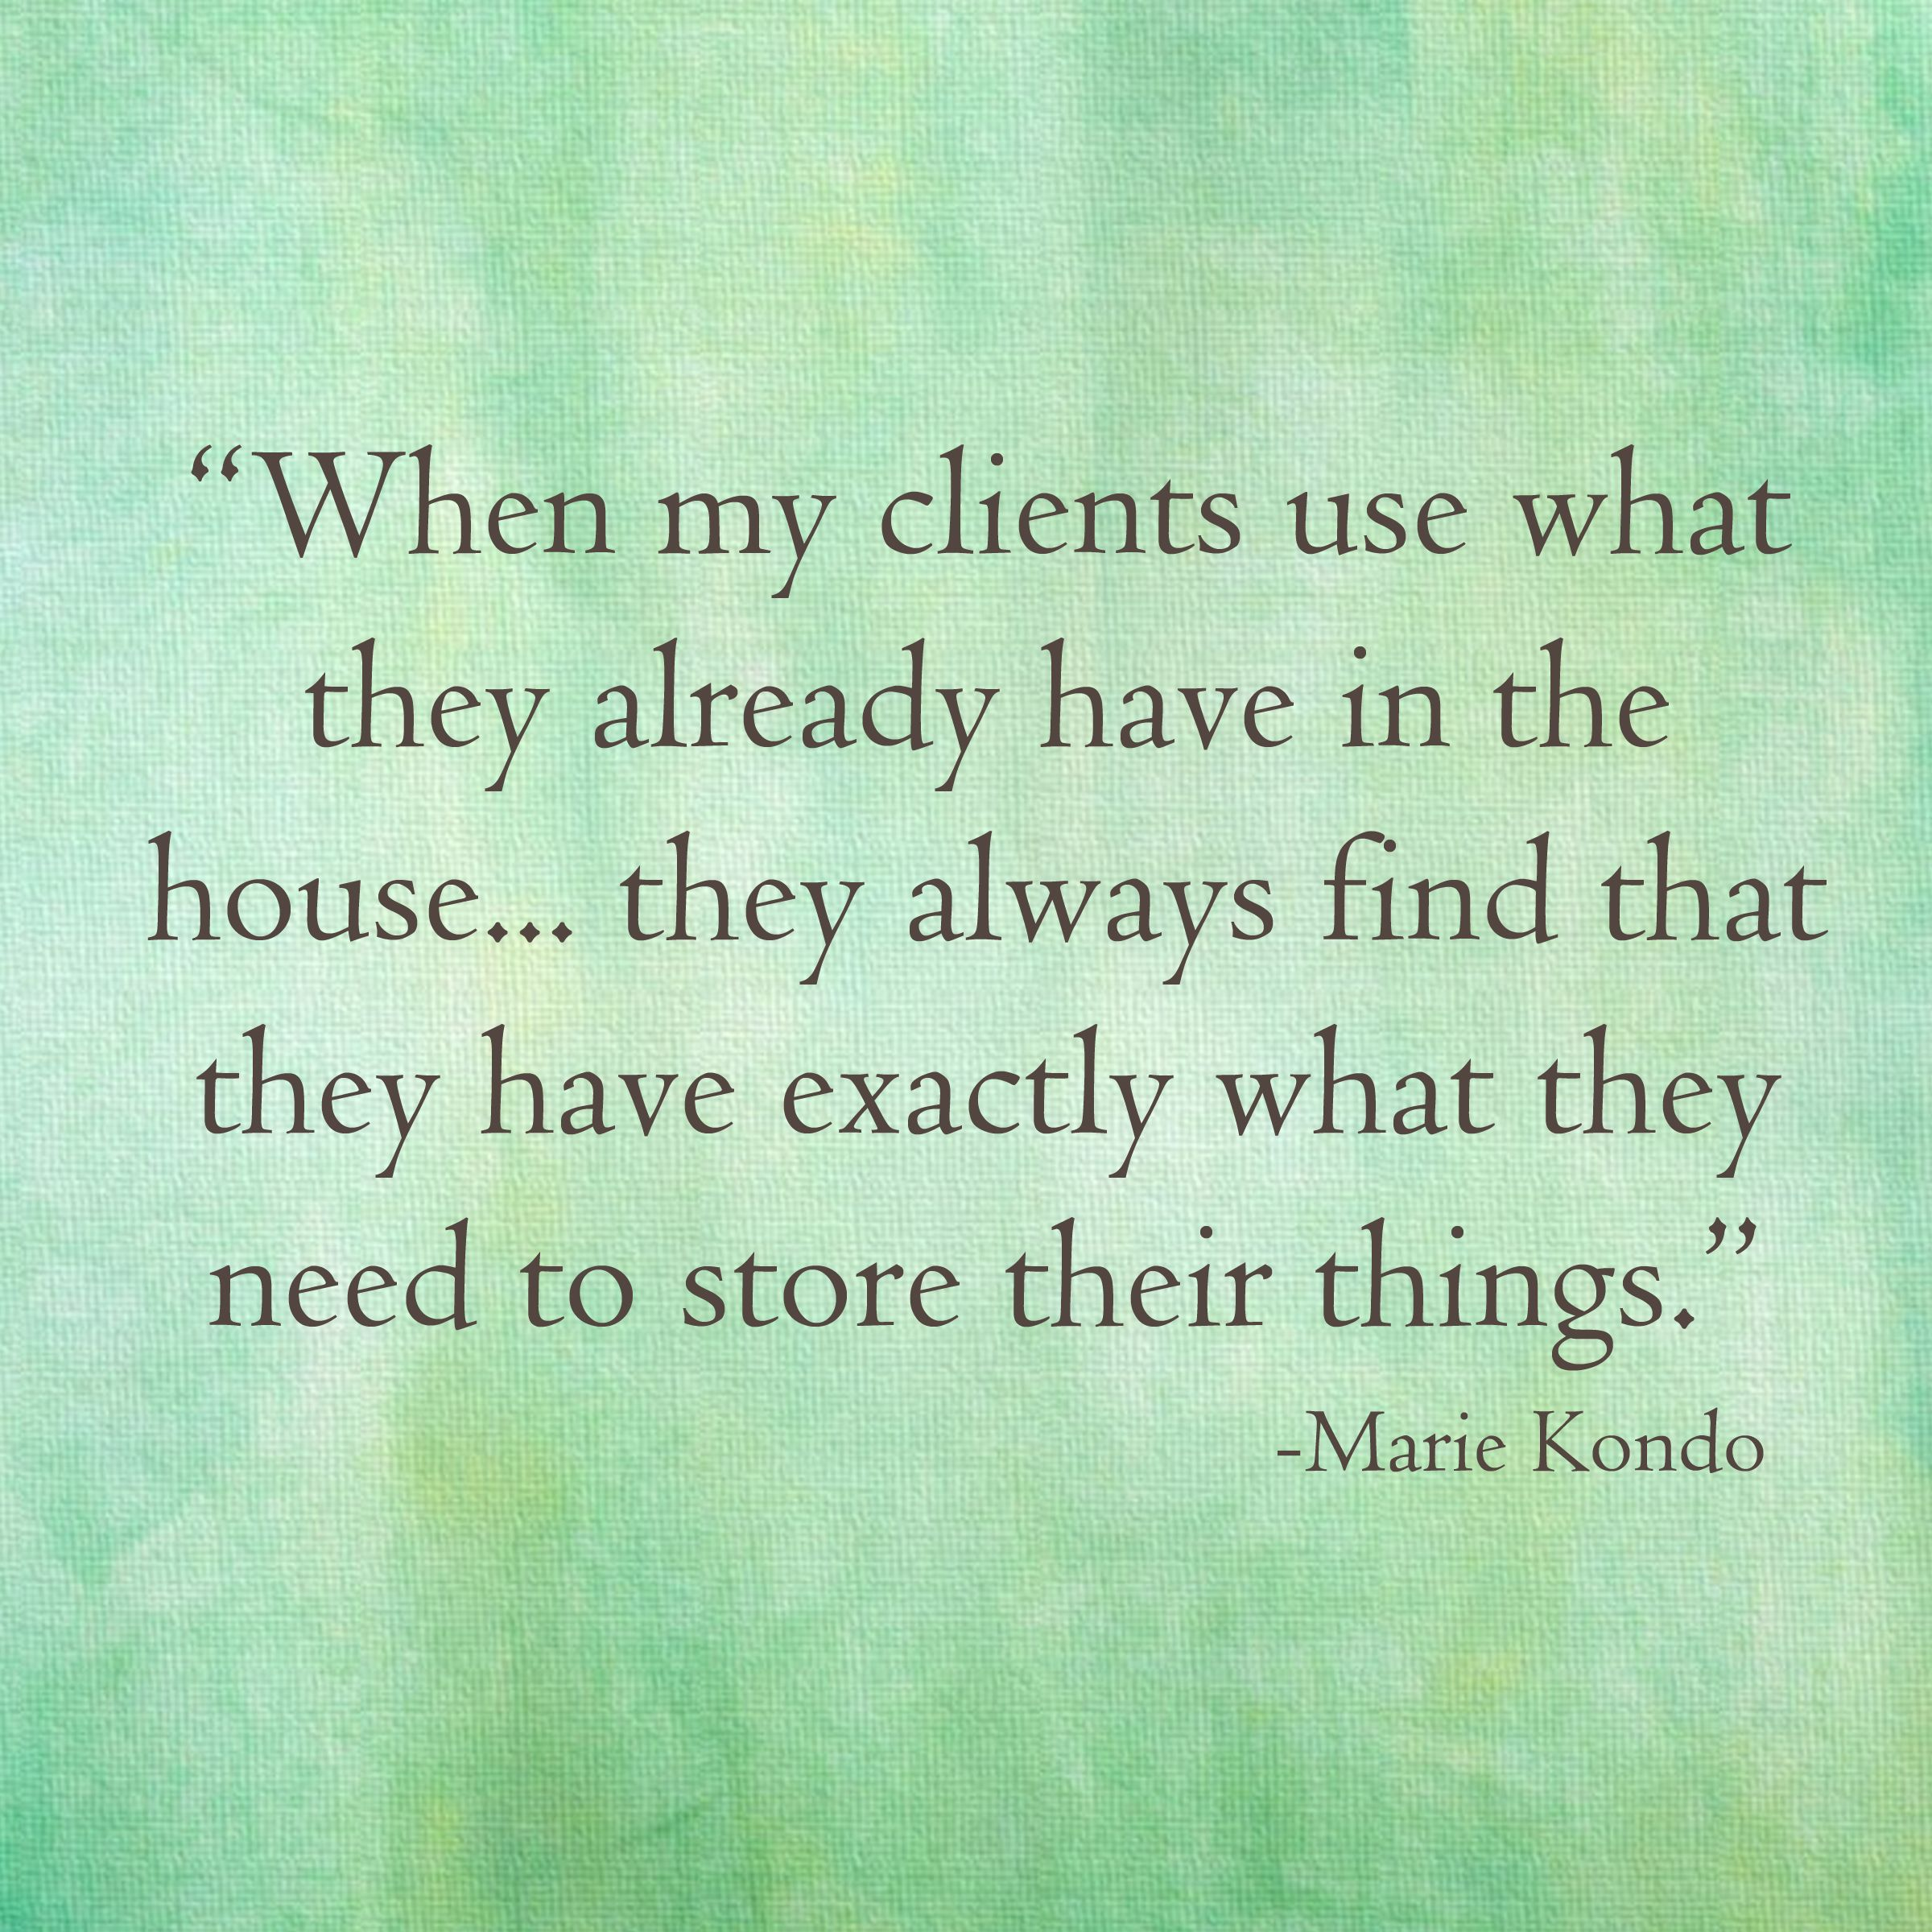 KonMari quotes Marie Kondo | KonMari method | Pinterest ...